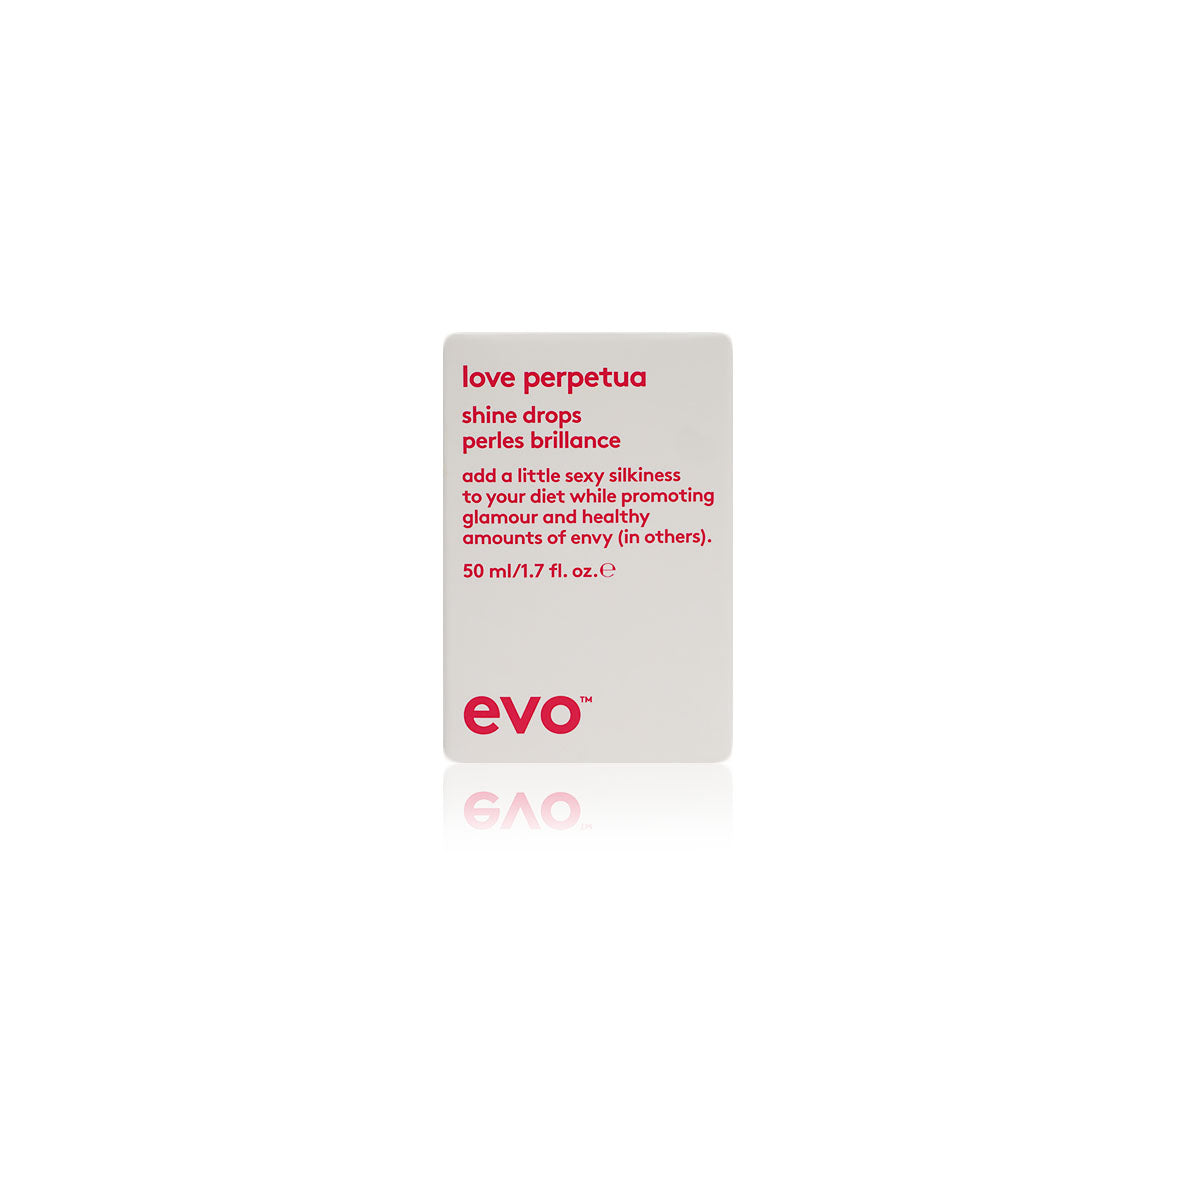 Evo love perpetua shine drops, provides shine and seals hair cuticle - Case of 3 bottles 50ml /1.7fl.oz (New)